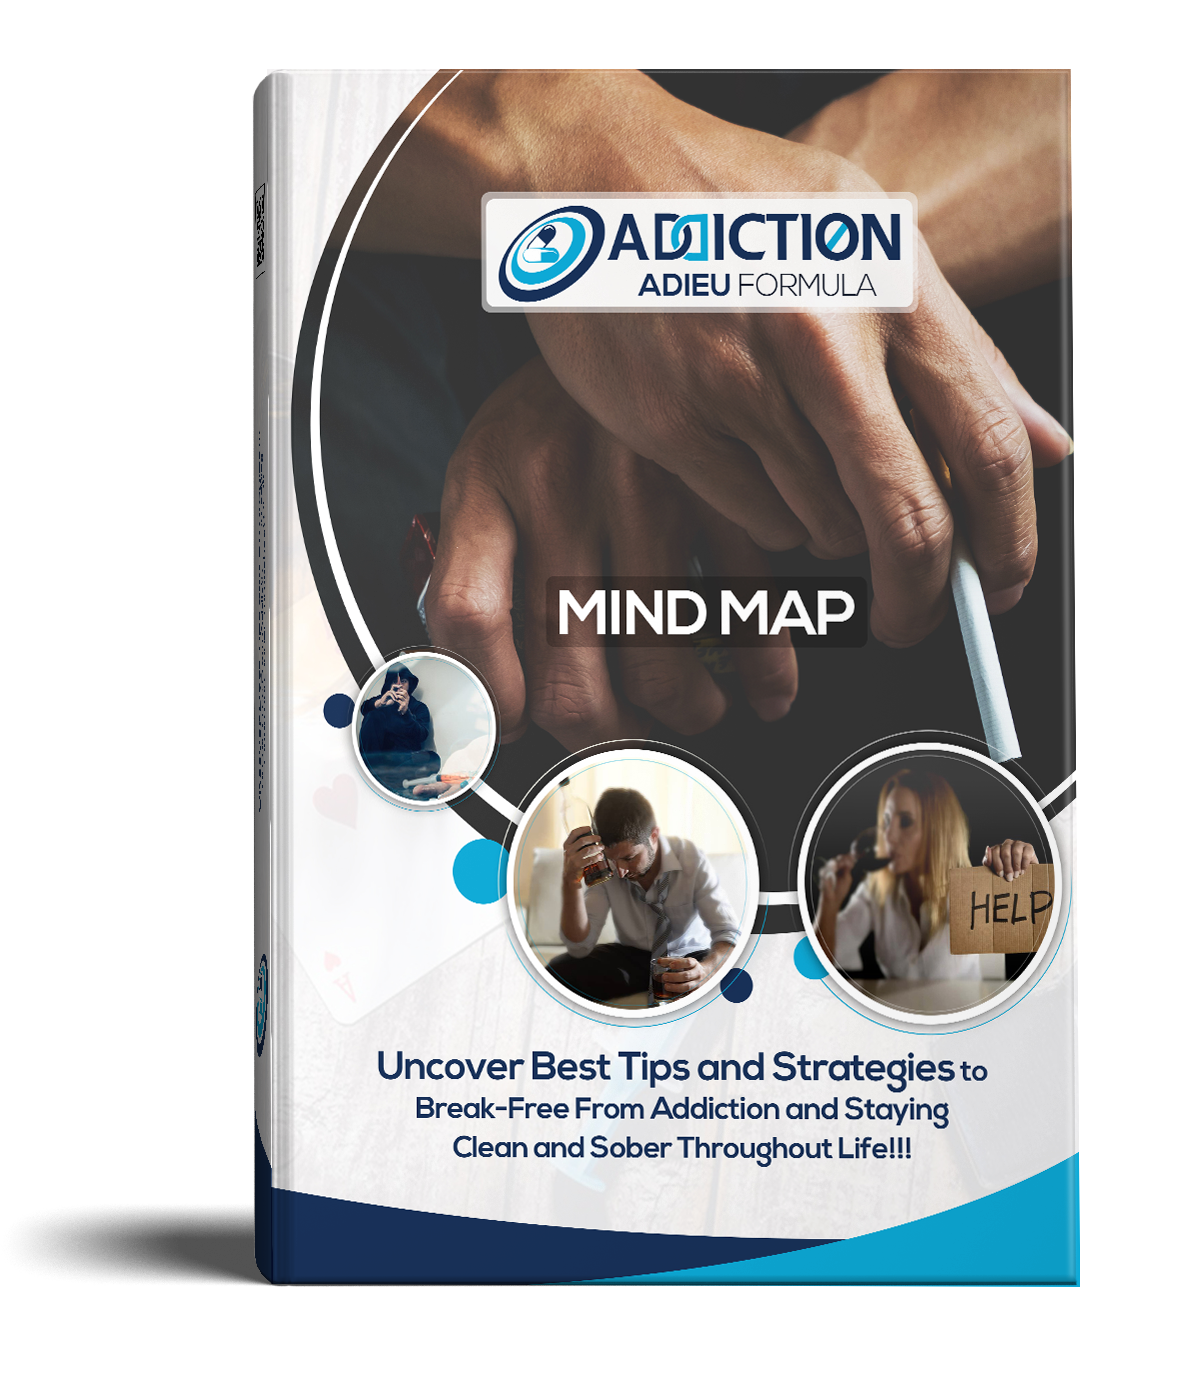 Addiction Adieu Formula Mind Map Design